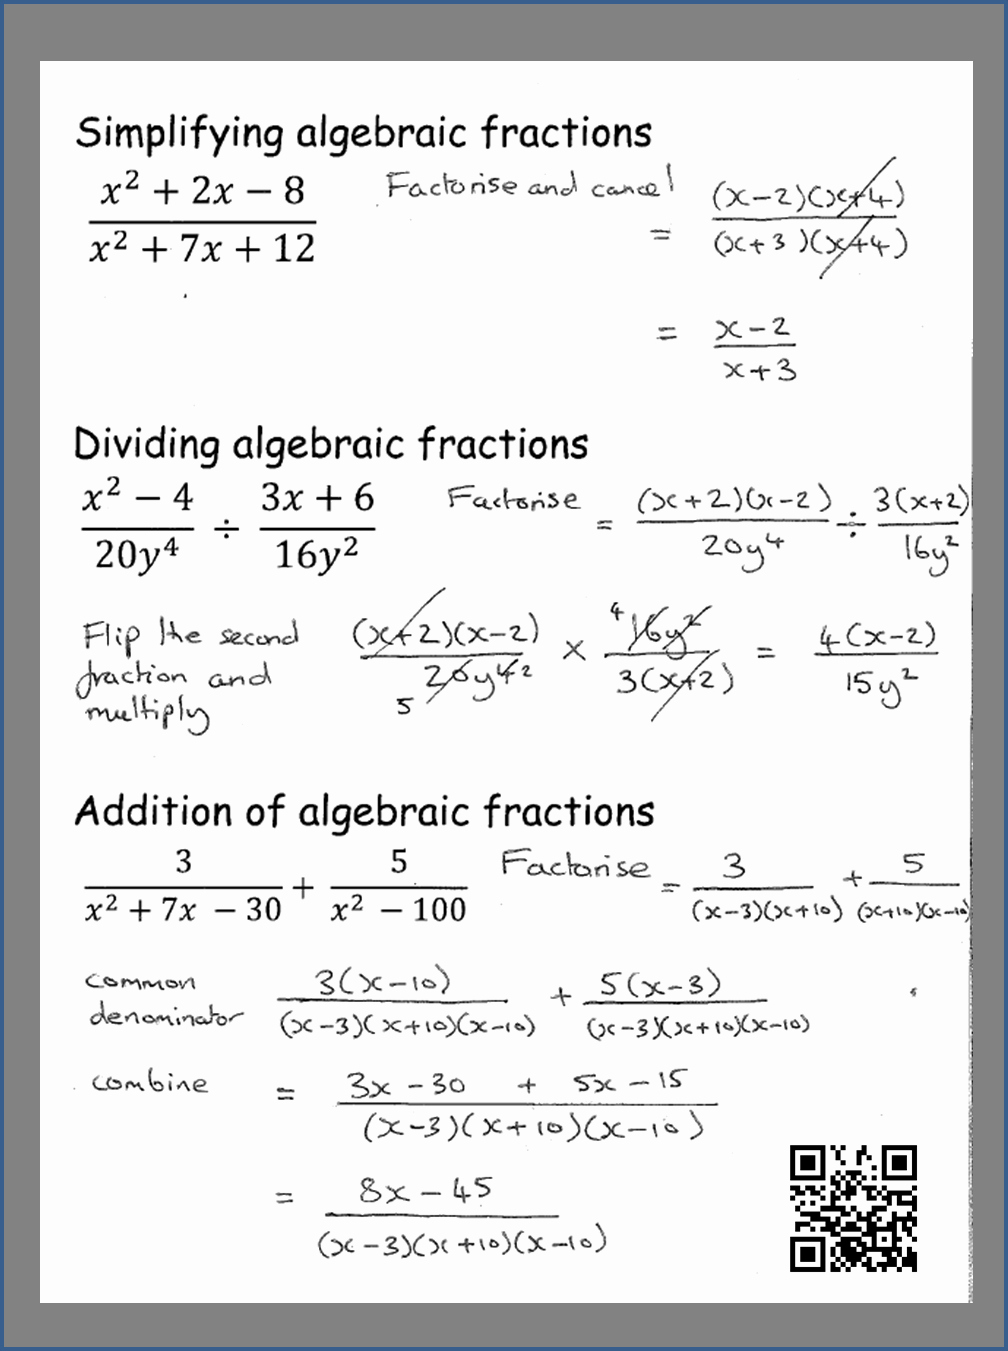 Simplifying Algebraic Fractions Worksheet Awesome How to Simplify Algebraic Fractions Gcse Maths